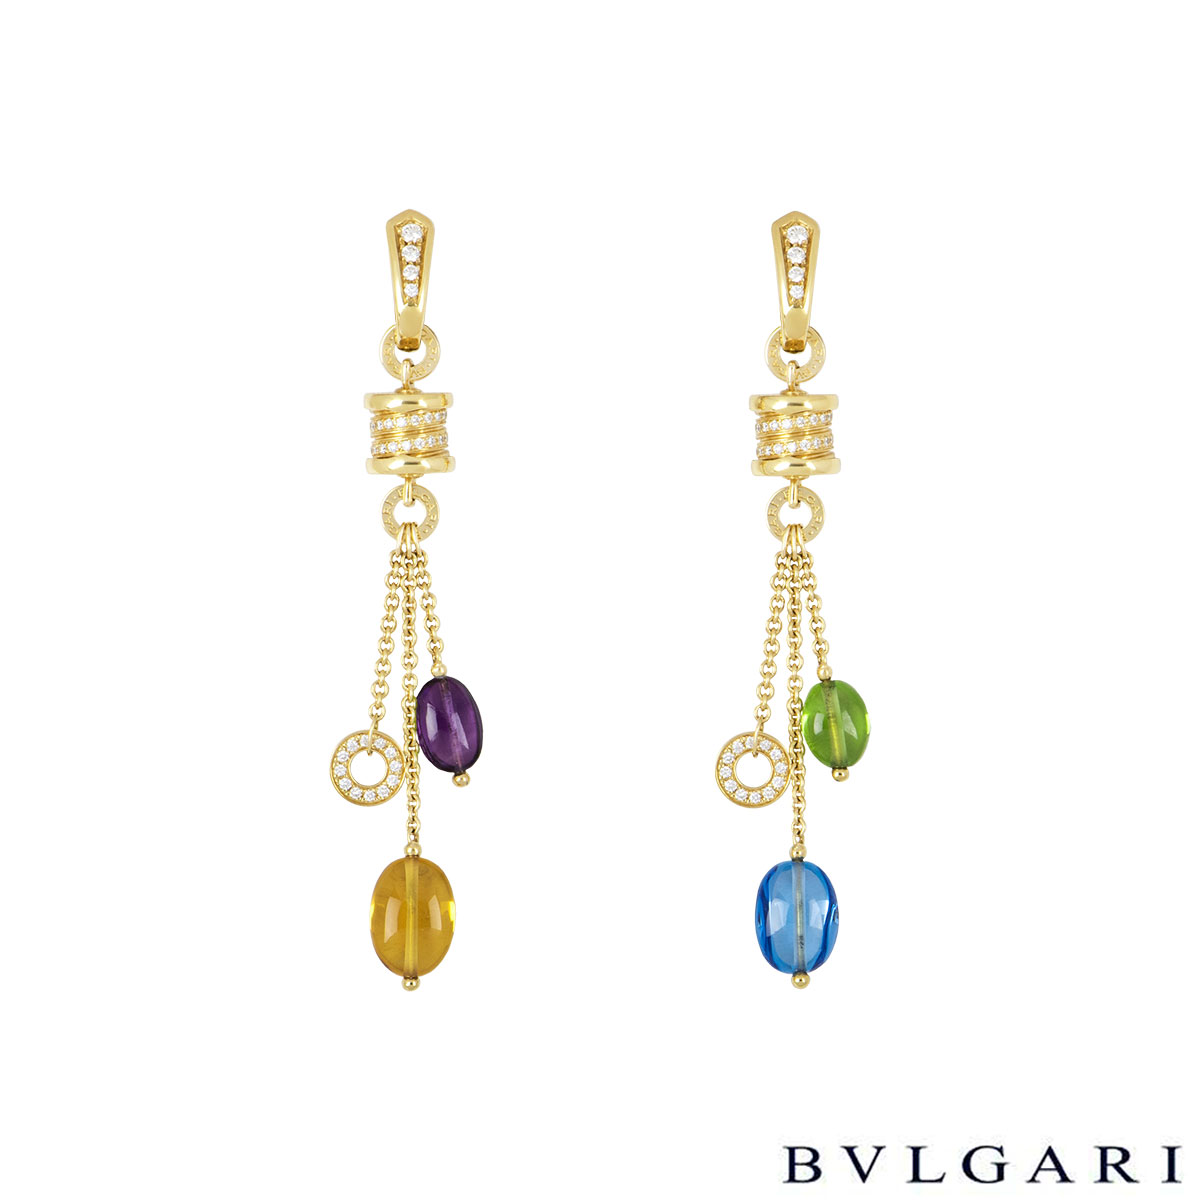 Bvlgari Yellow Gold Multi-Gemstone B.Zero1 Earrings